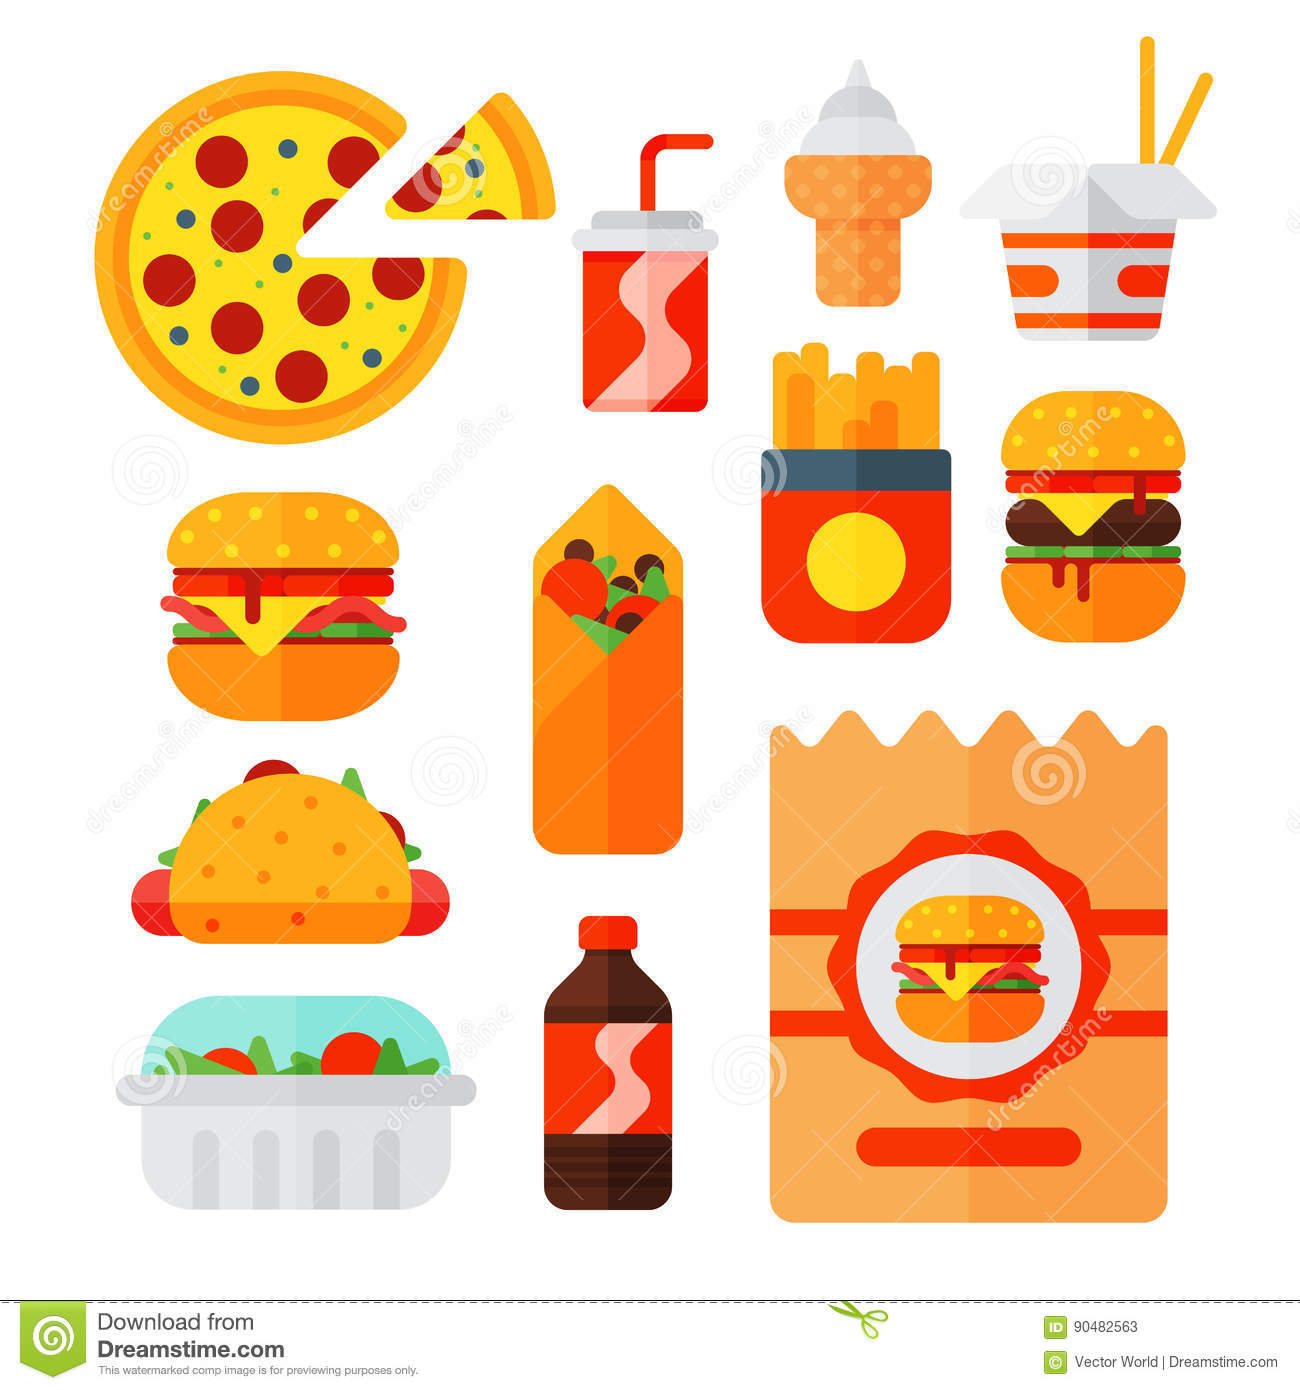 Cartoon restaurant free vector graphic download - Royalty Free Vector Set Of Colorful Cartoon Fast Food Icons Isolated Restaurant Tasty American Cheeseburger Meat And Unhealthy Burger